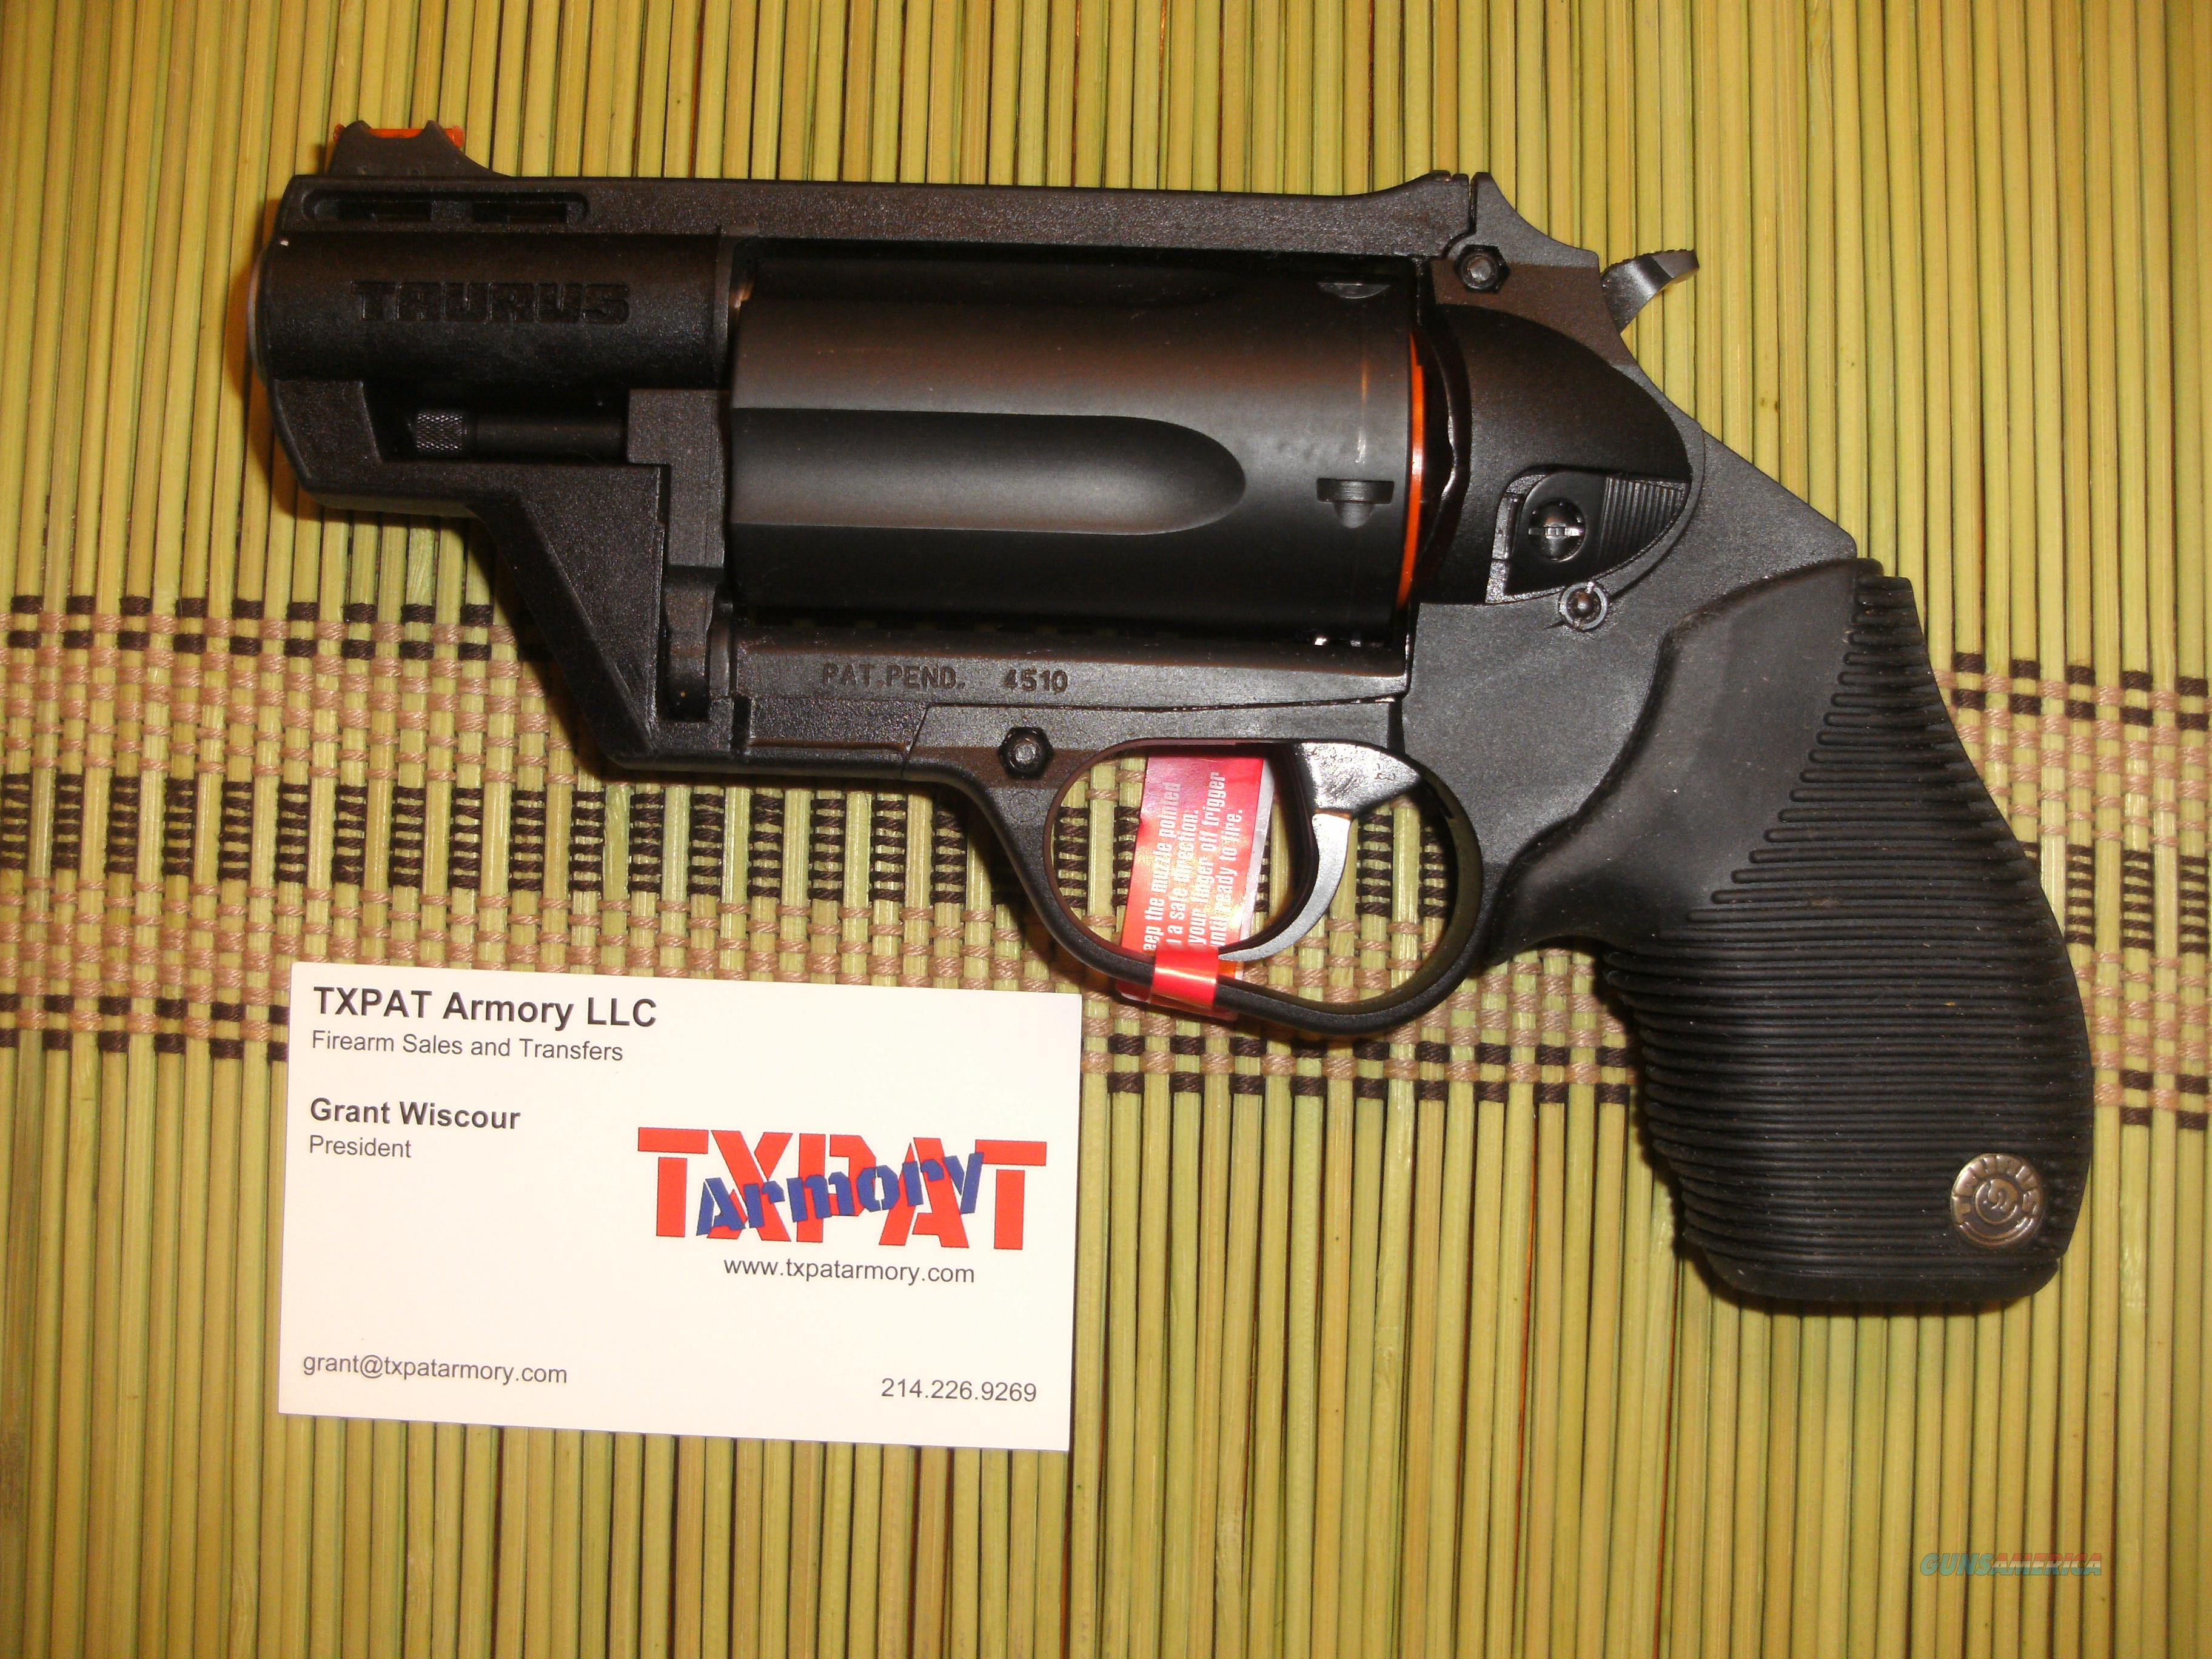 TAURUS JUDGE PUBLIC DEFENDER POLY  45LC/ 410 - FIBER OPTIC SIGHT - BIG  POWER IN SMALL PACKAGE